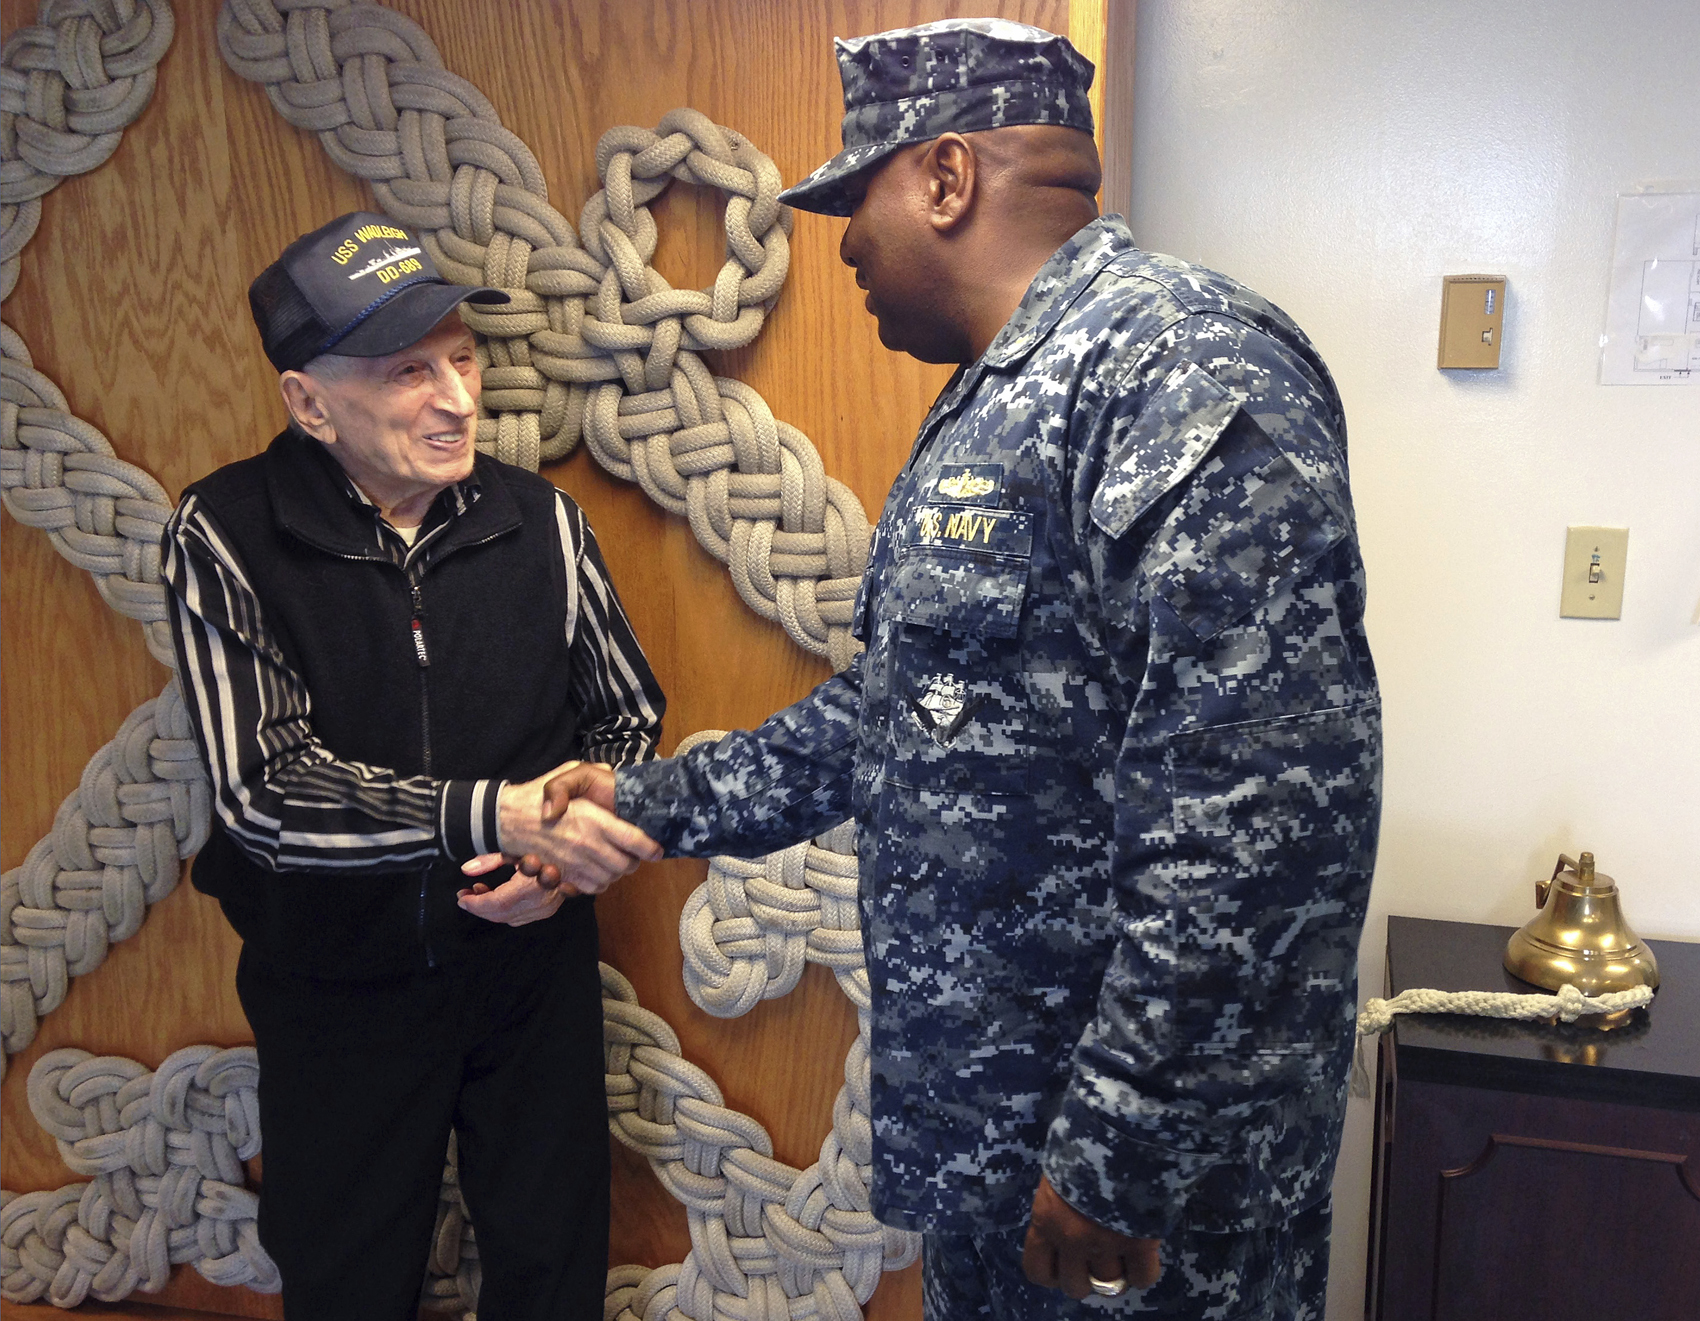 WWII veteran Edmund DelBarone, left, is greeted by Lt. Cmdr. Russell Goff during a tour at Naval Station Newport, in Newport, R.I., Thursday July 27, 2017. DelBarone, a 96-year-old World War II veteran, once dreamed of returning to a Navy installation to reminisce about his naval career, and help of a nonprofit it has become a reality. (Jennifer McDermott/AP)